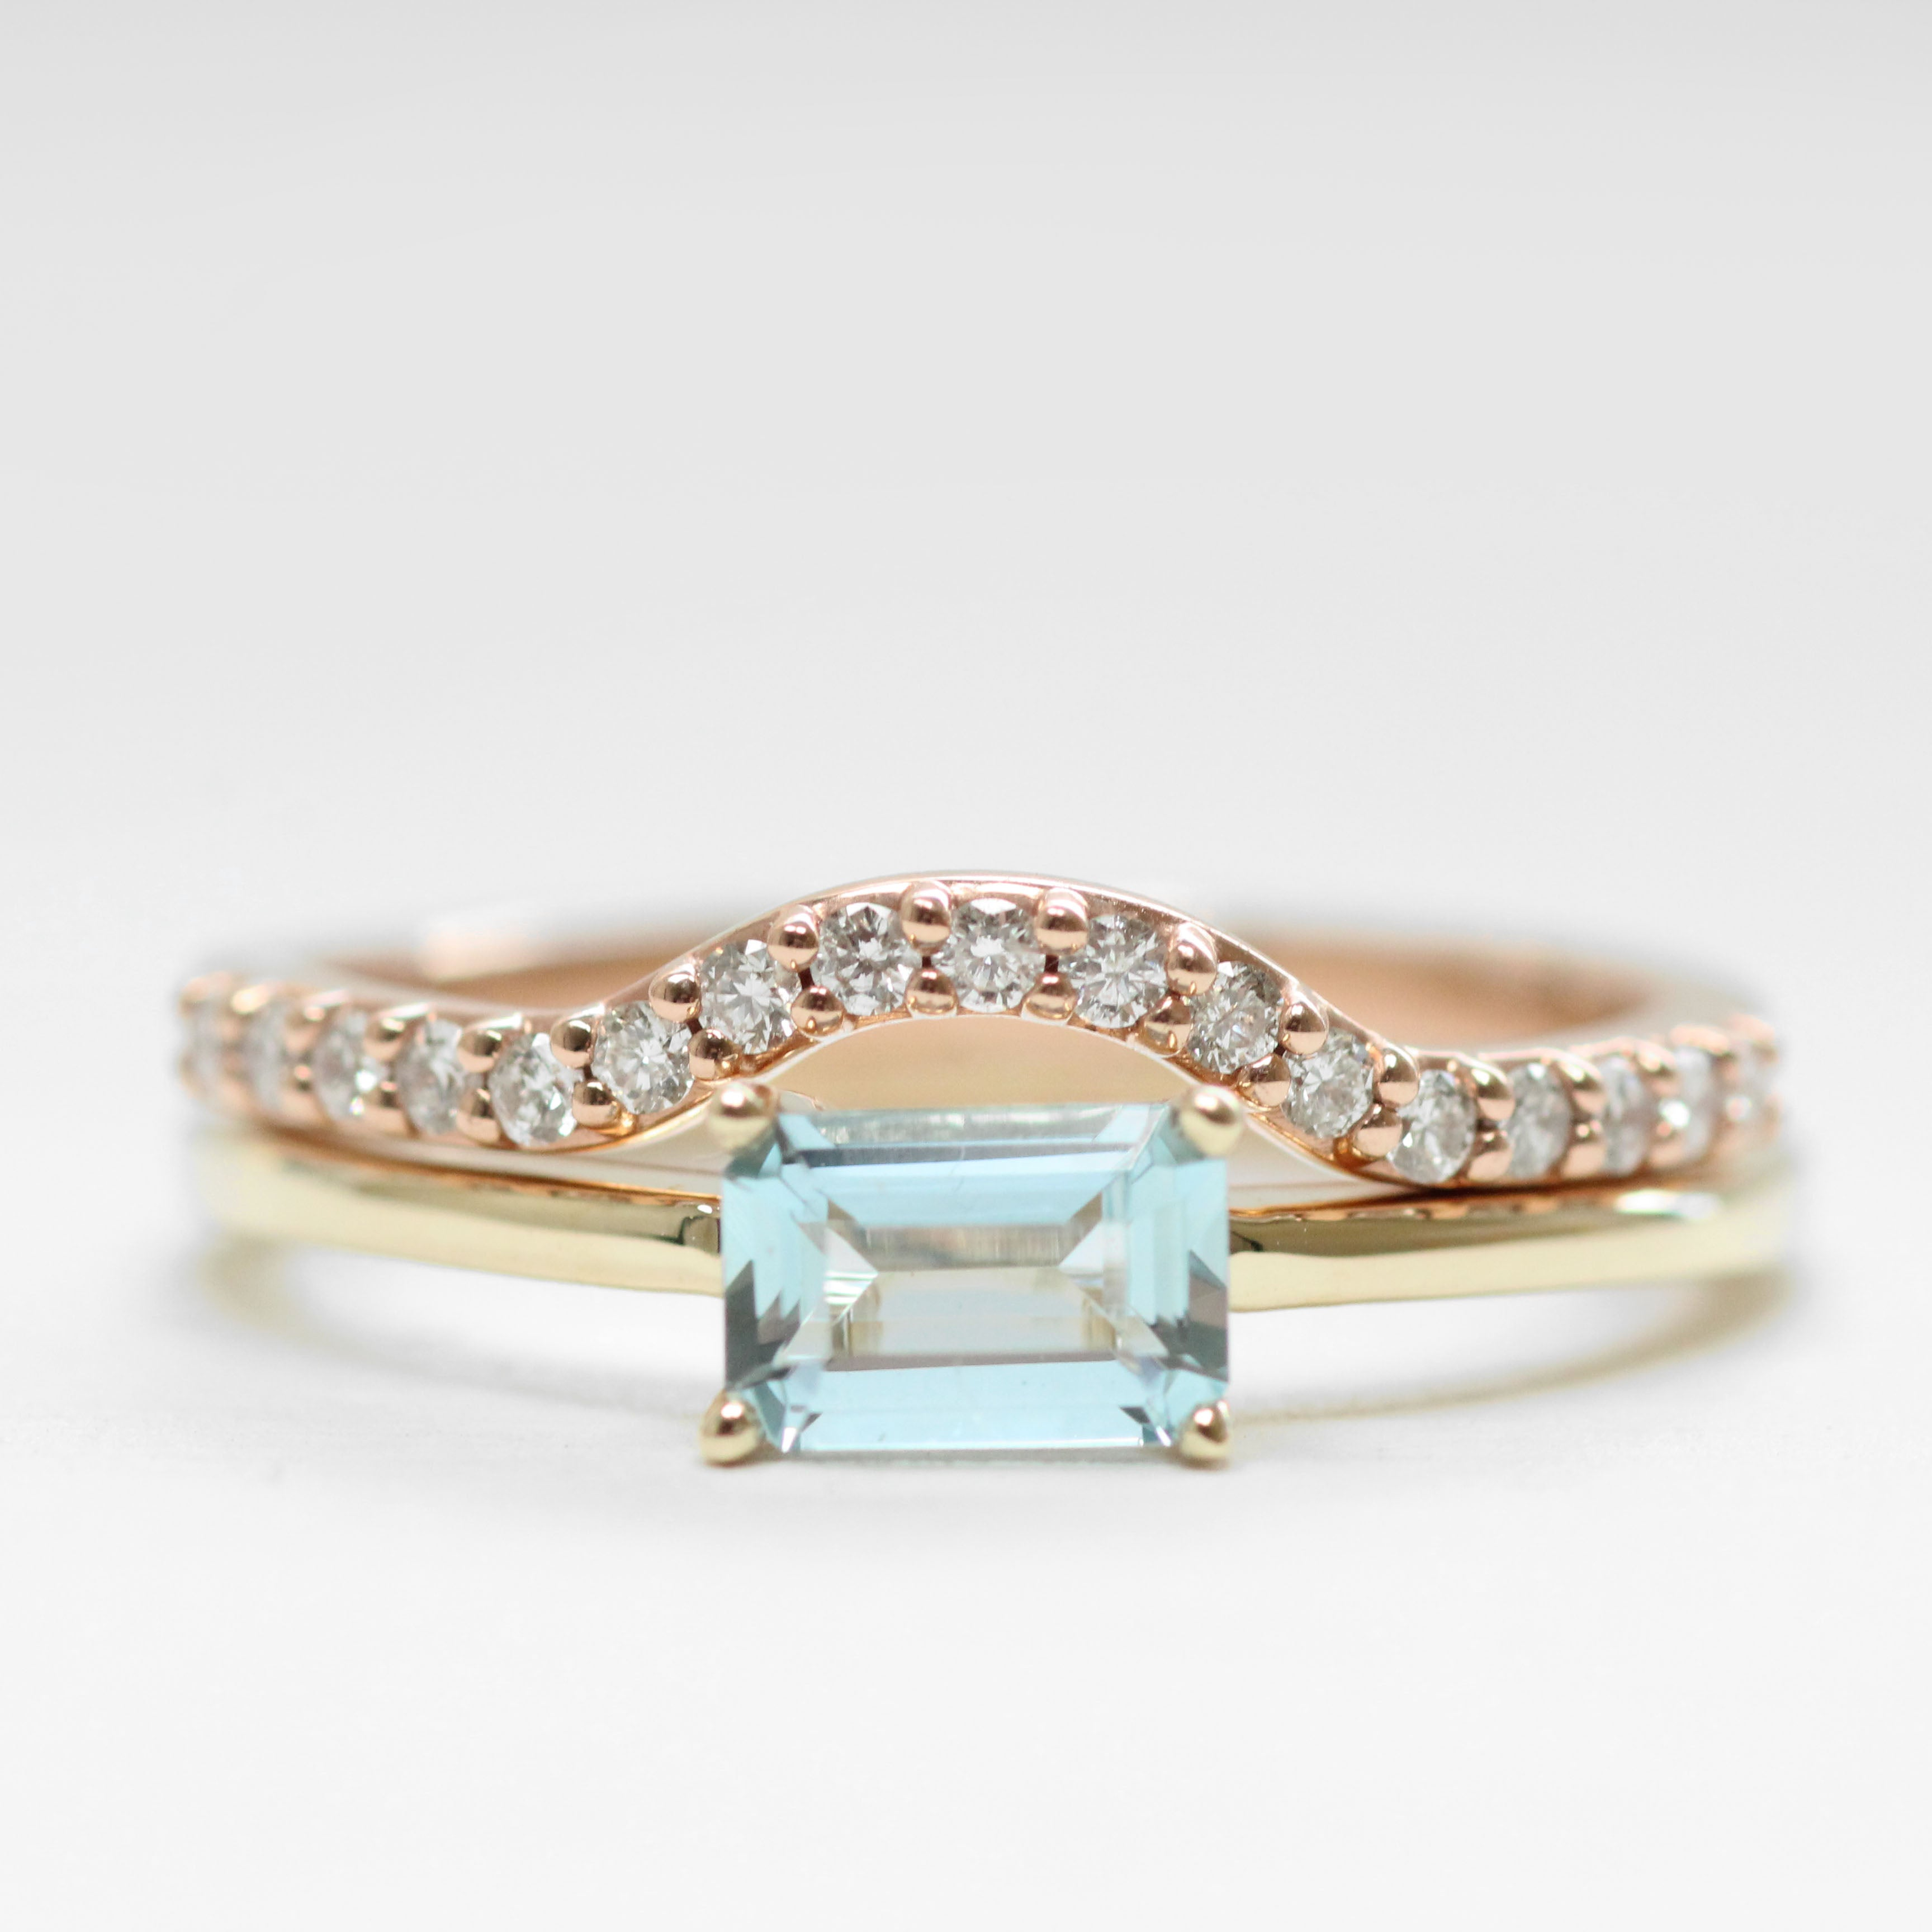 Ruthie Ring with Ice Blue Aquamarine - Your choice of metal - Custom